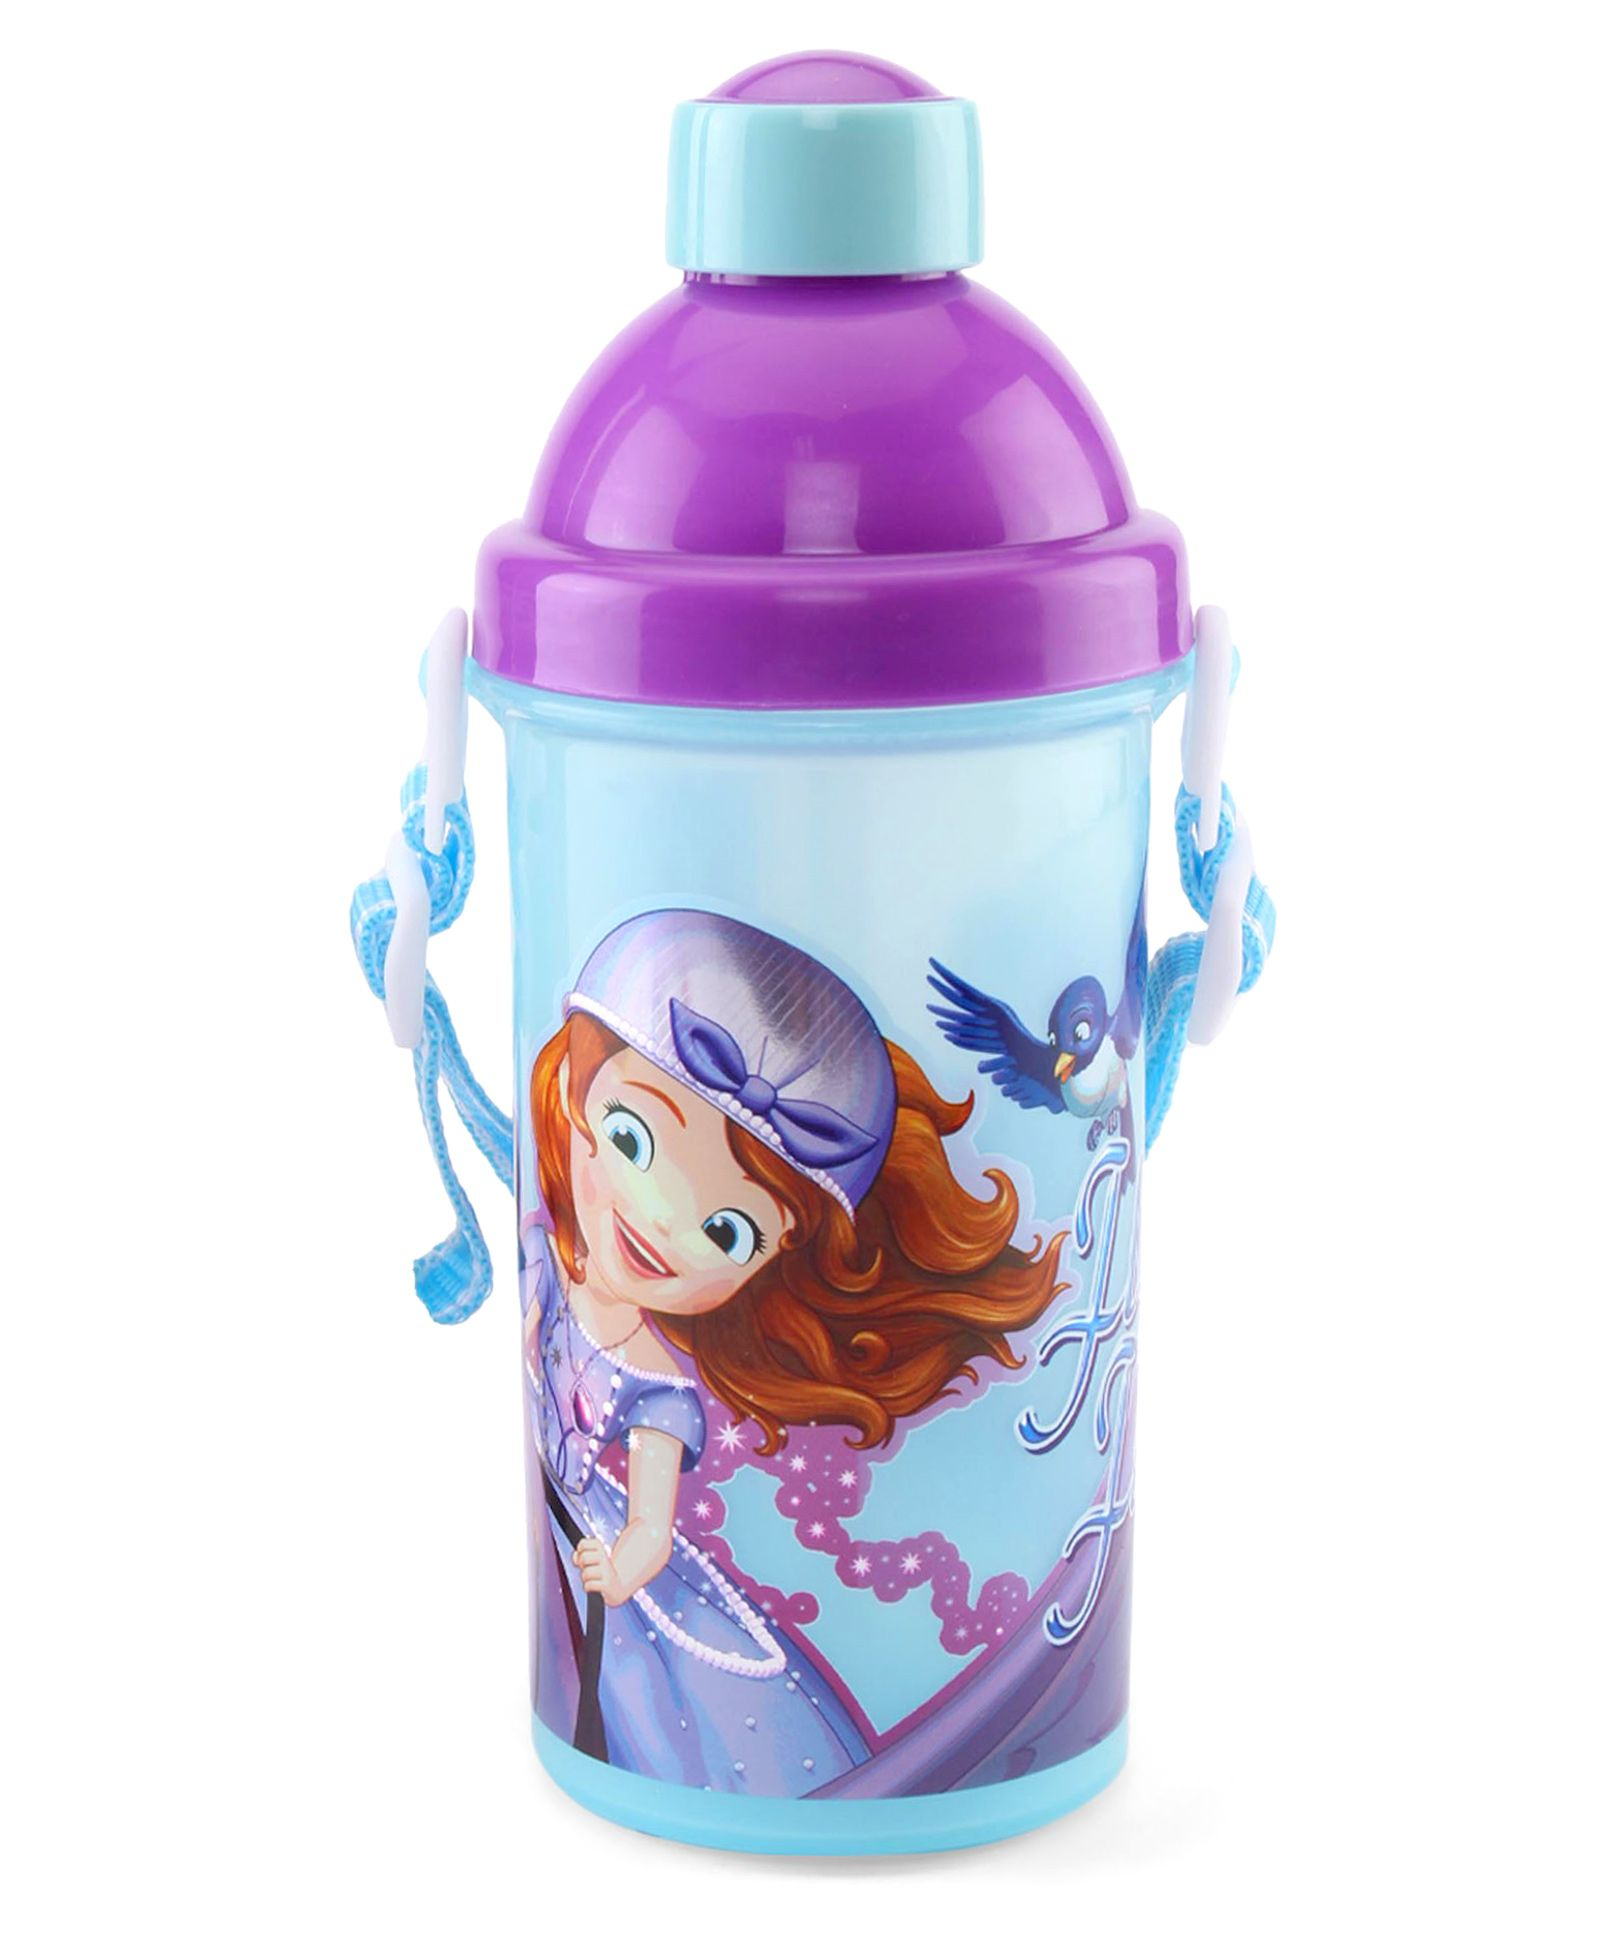 Back To School WWSB 60507 Sofia Water Bottle